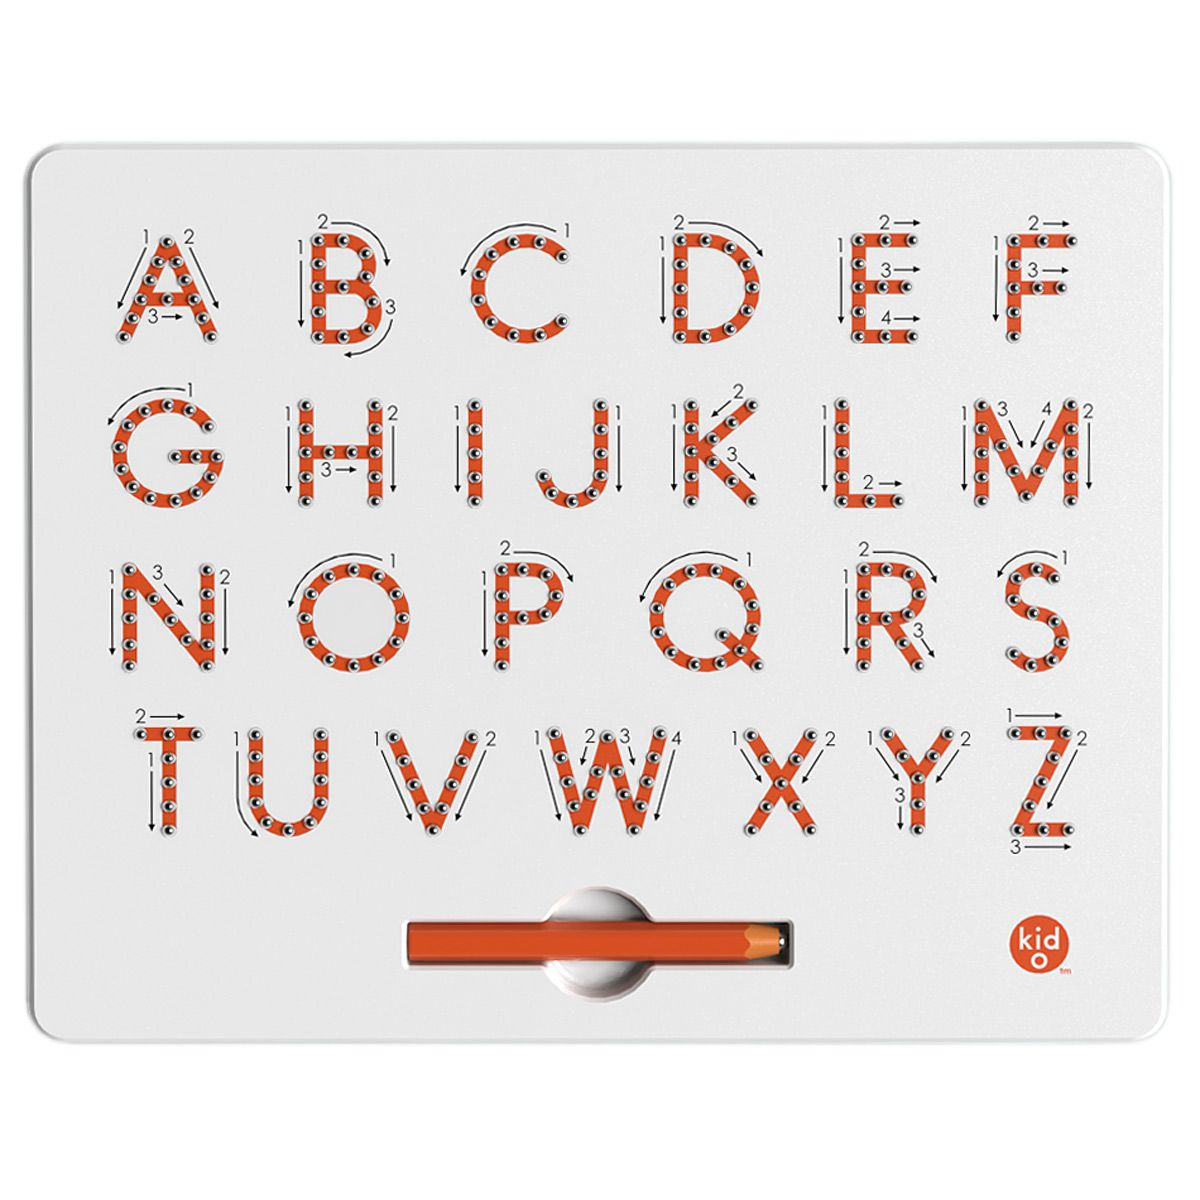 A-To-Z Magnetic Tablet   Educational Toy, For Kids, Alphabet